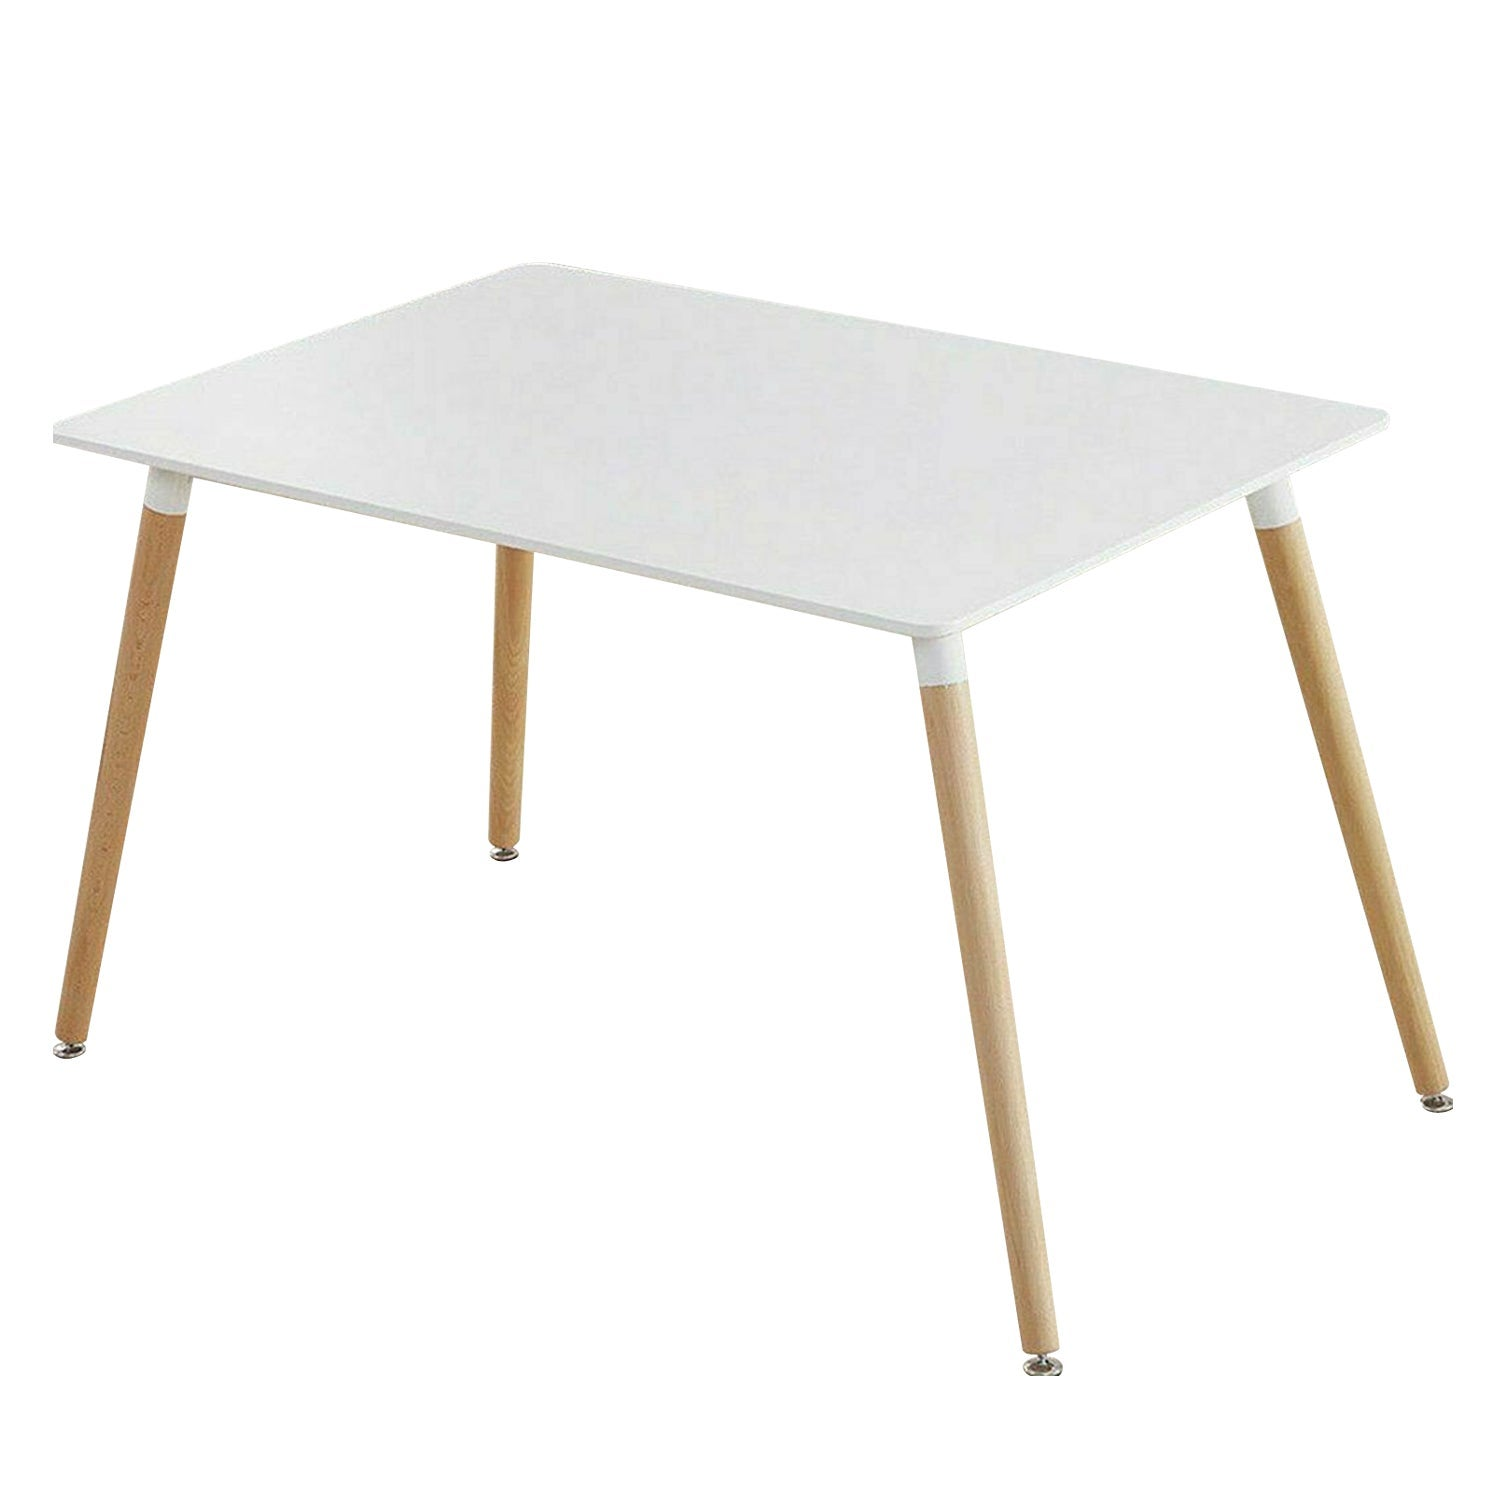 Cafe Wooden Top Replica Tables Modern Pop Hot Square Dining Table White